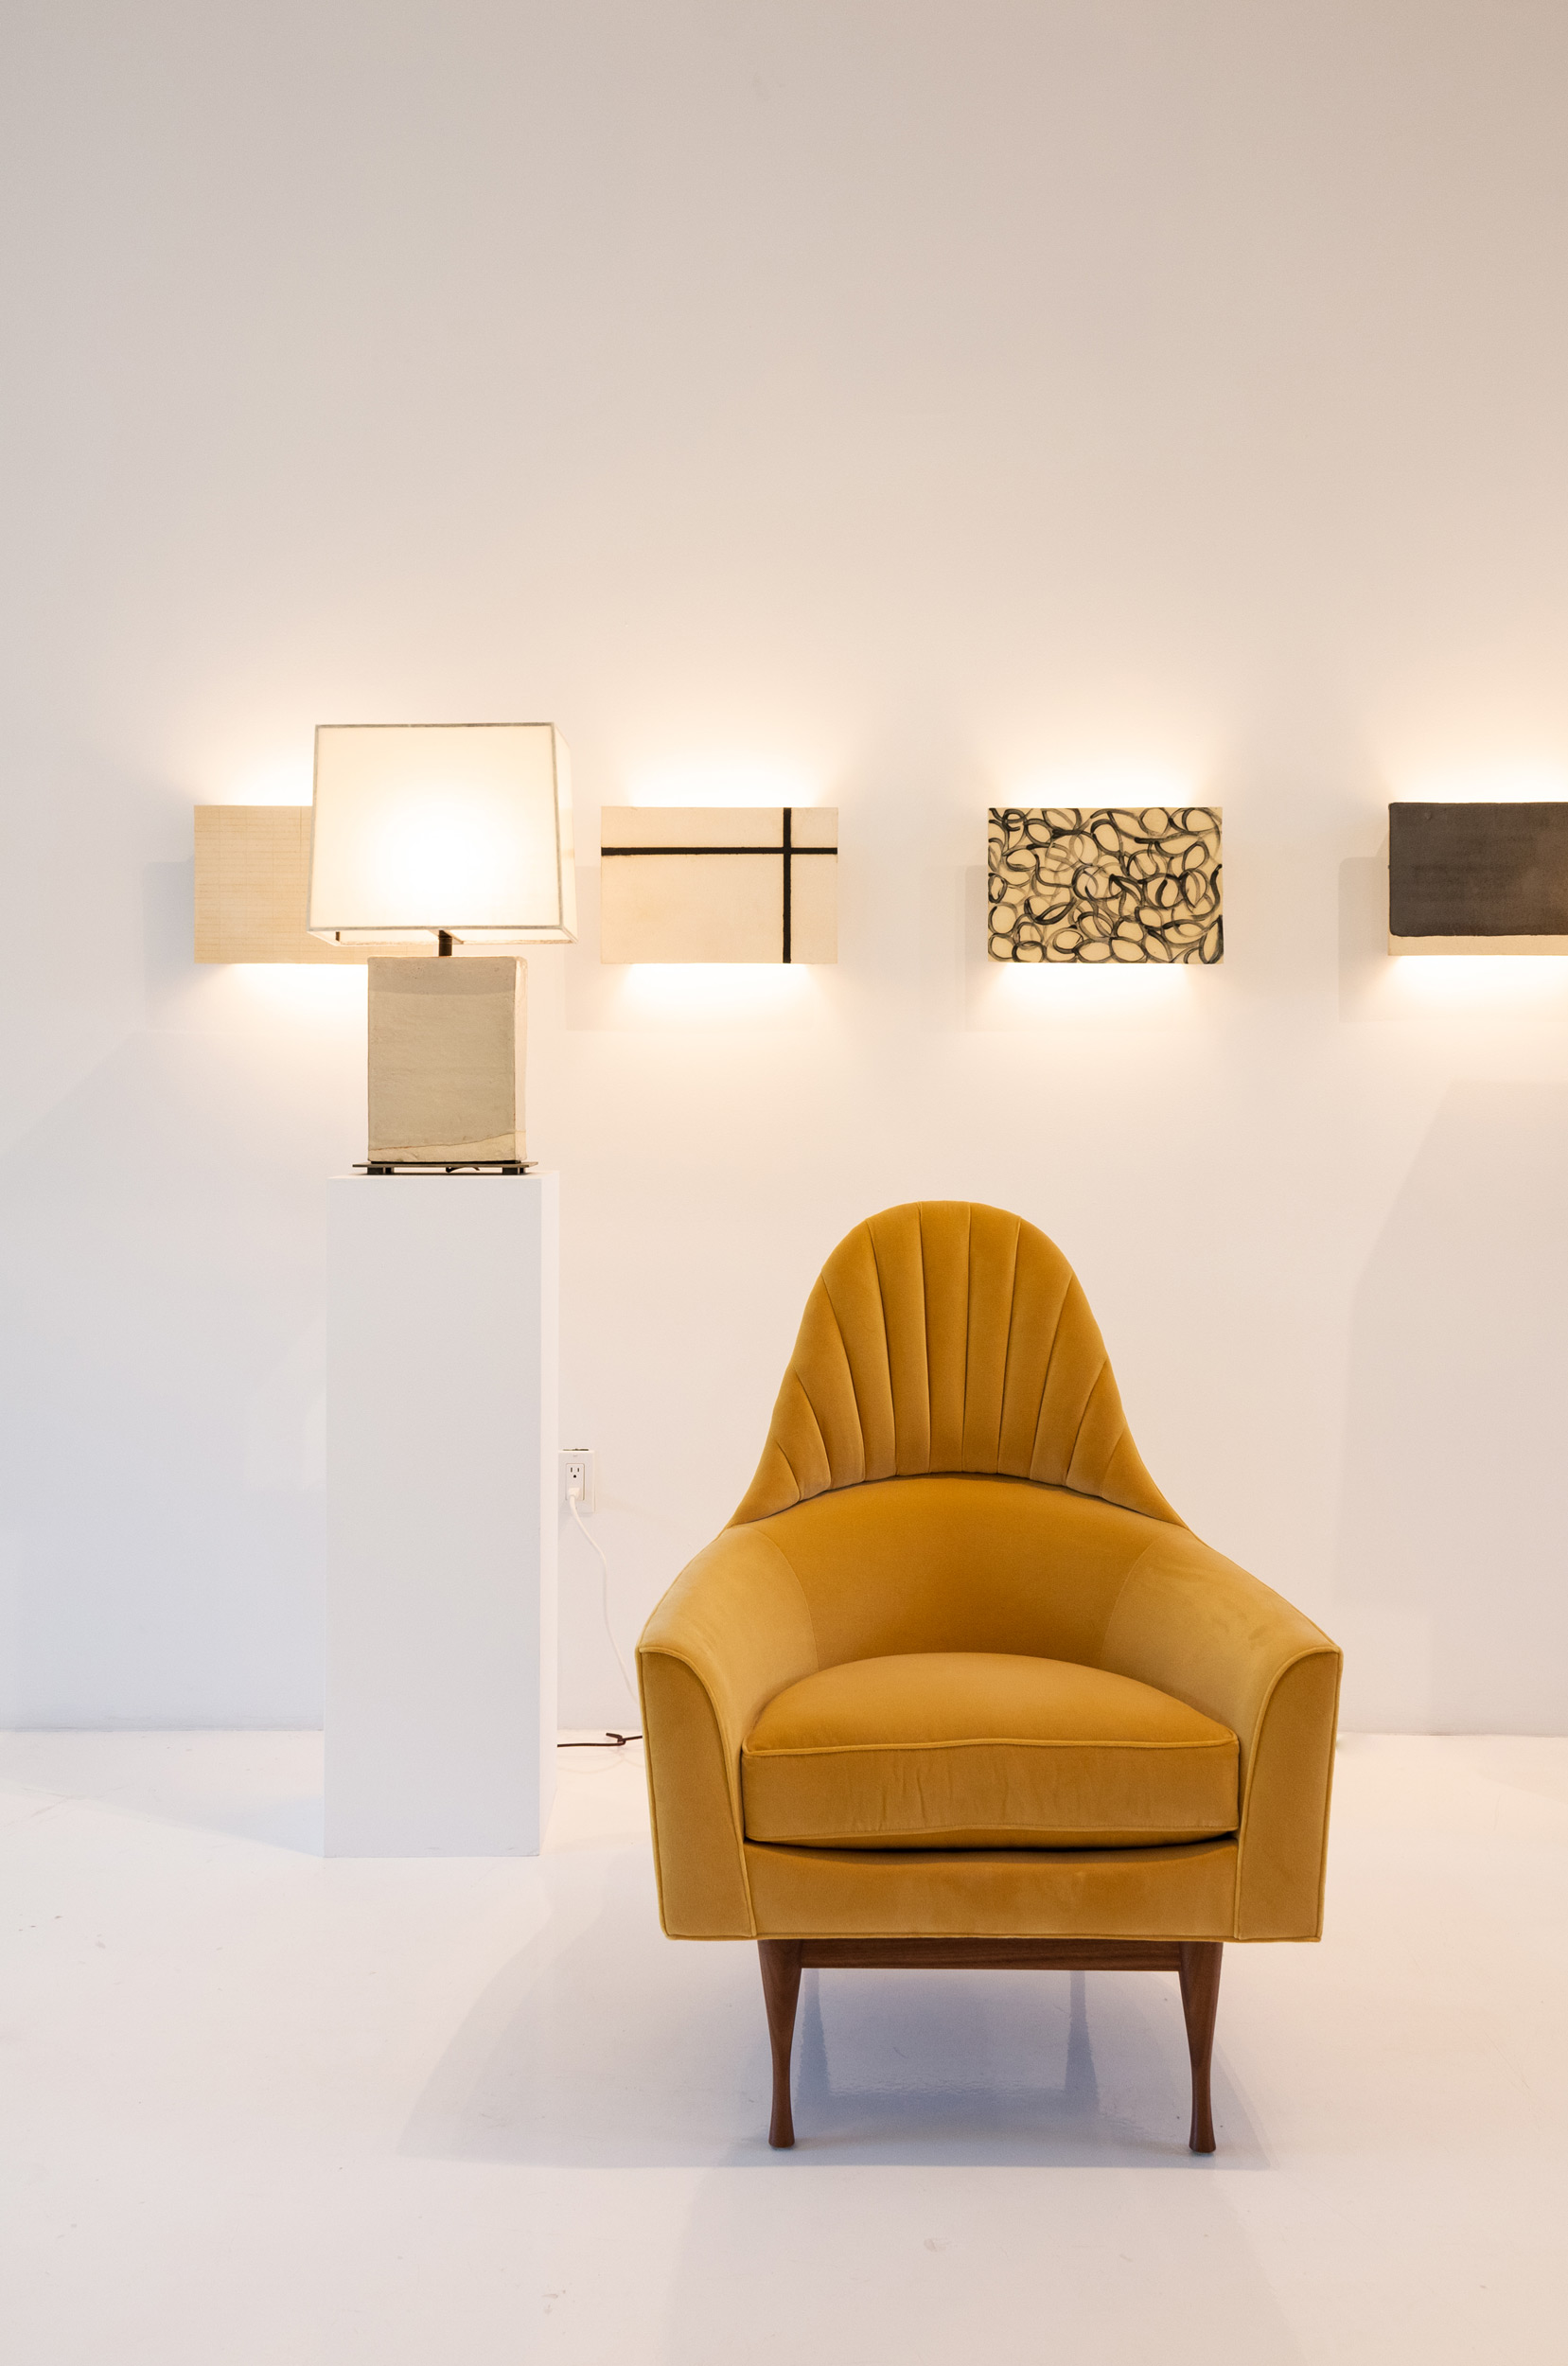 YellowChairSconces